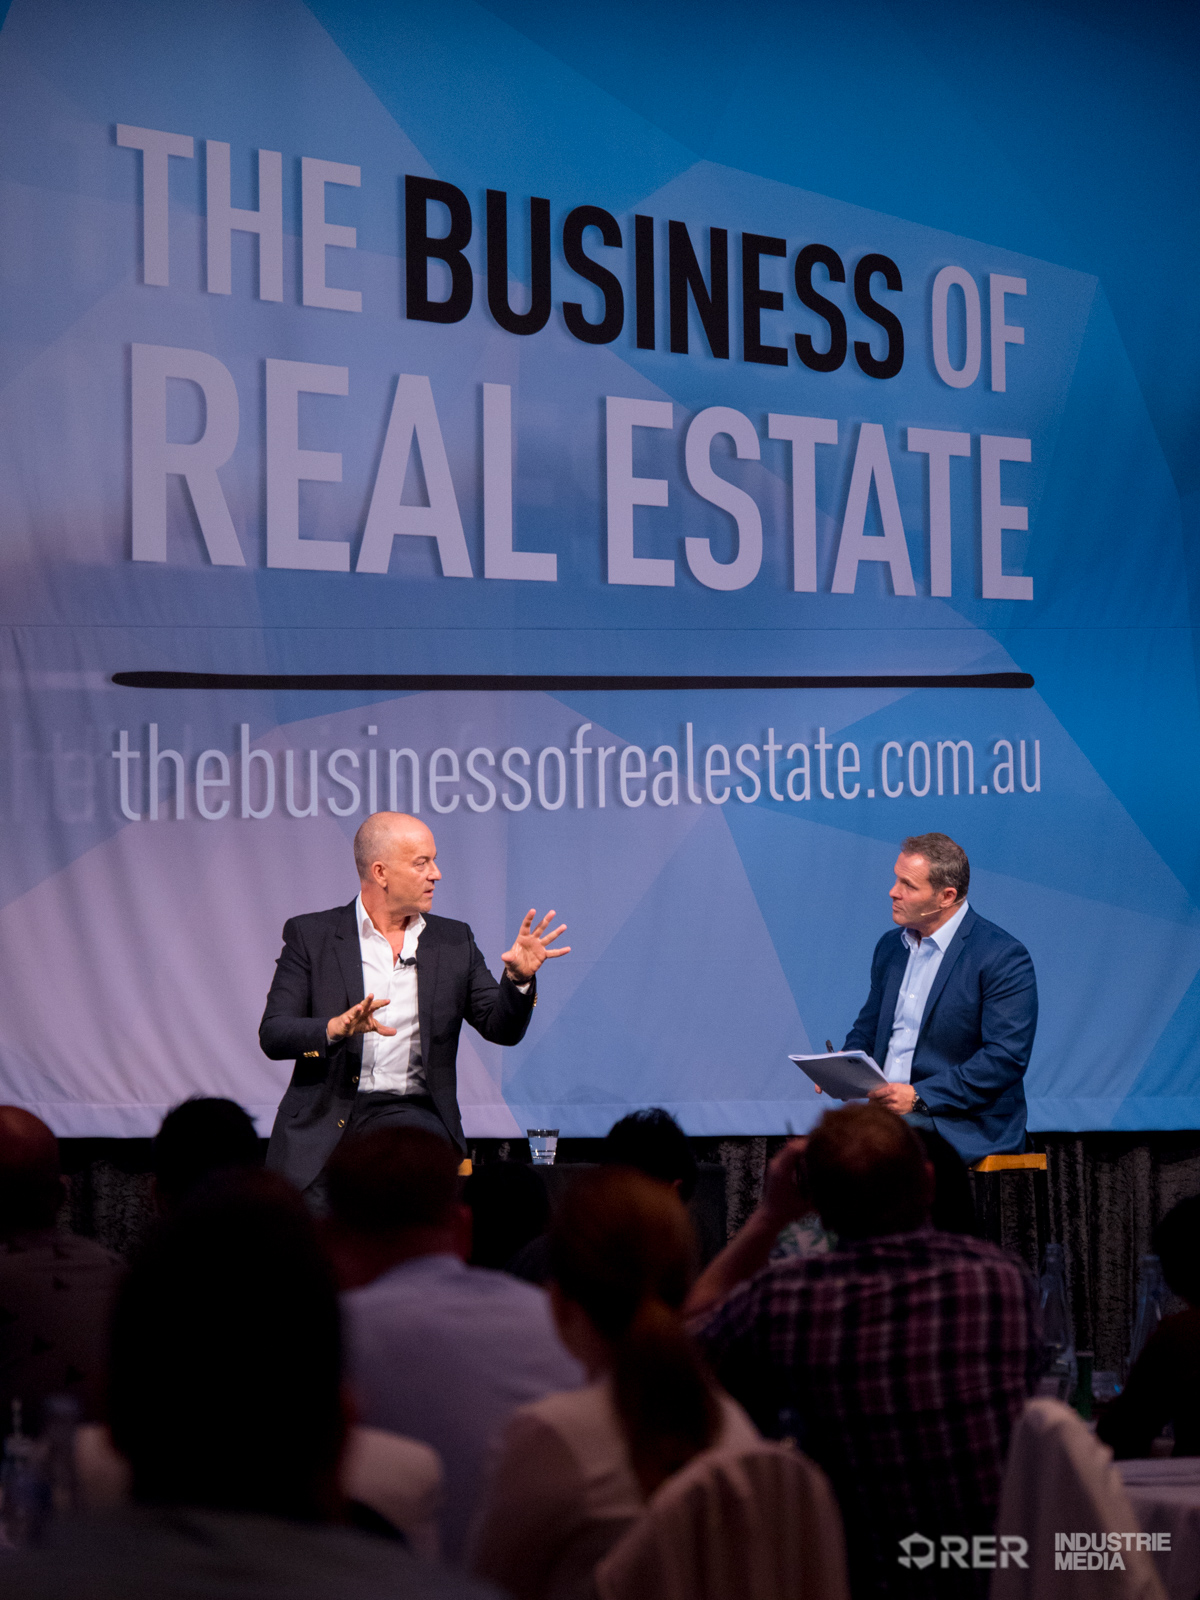 http://www.thebusinessofrealestate.com.au/wp-content/uploads/2016/09/RER_BUSINESS_OF_REAL_ESTATE-83.jpg